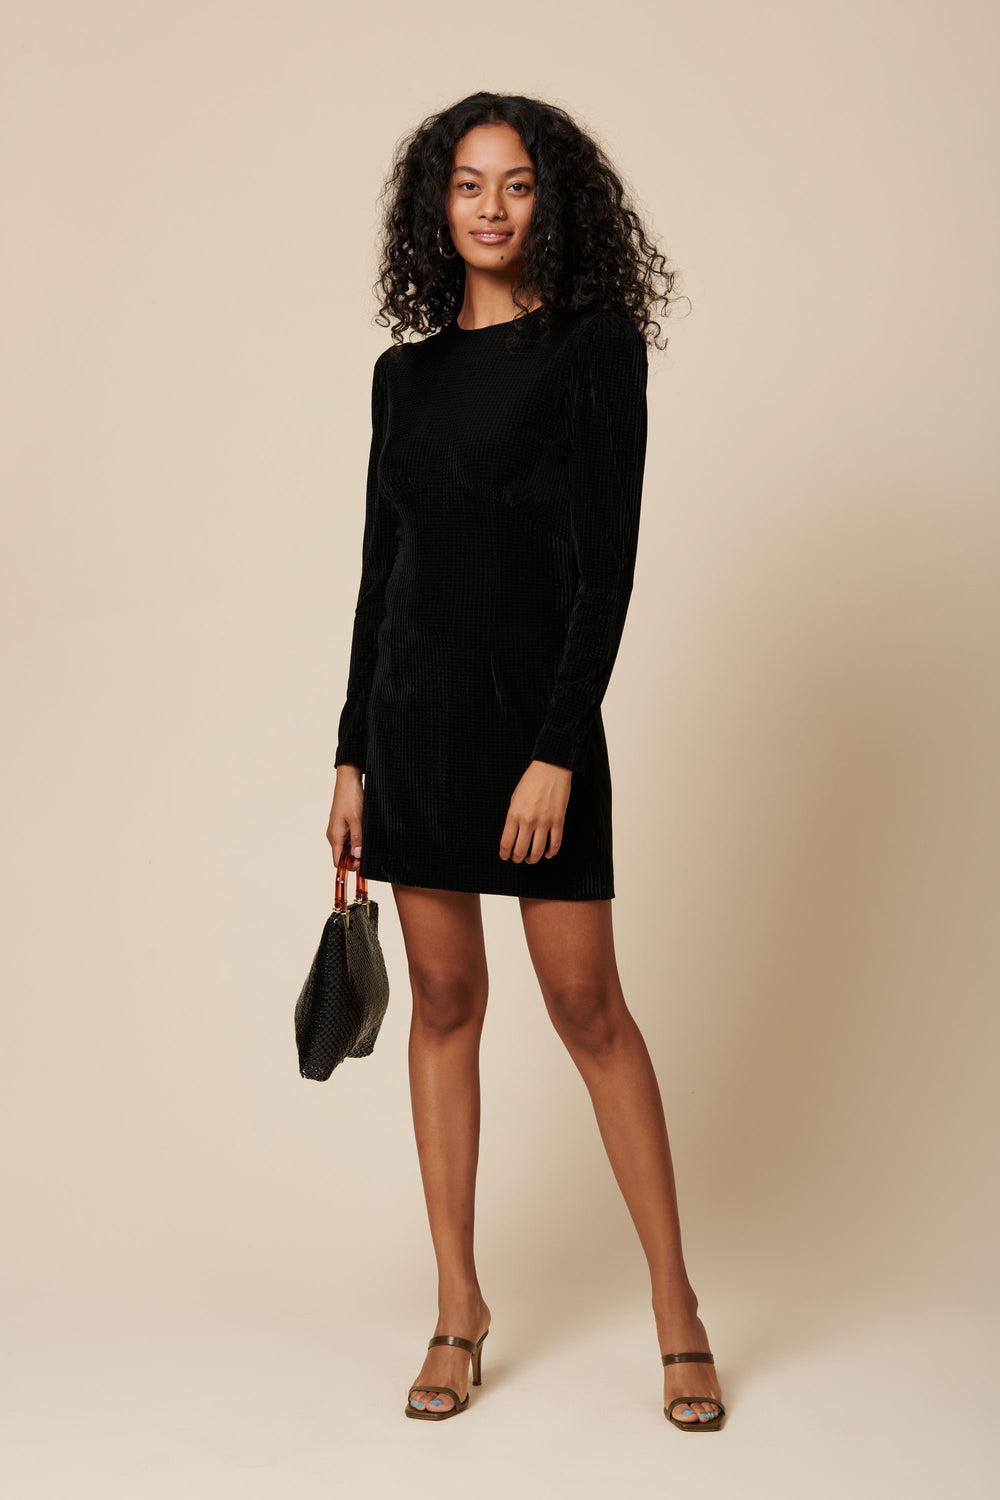 Vivian Dress in Black Velvet - Whimsy & Row